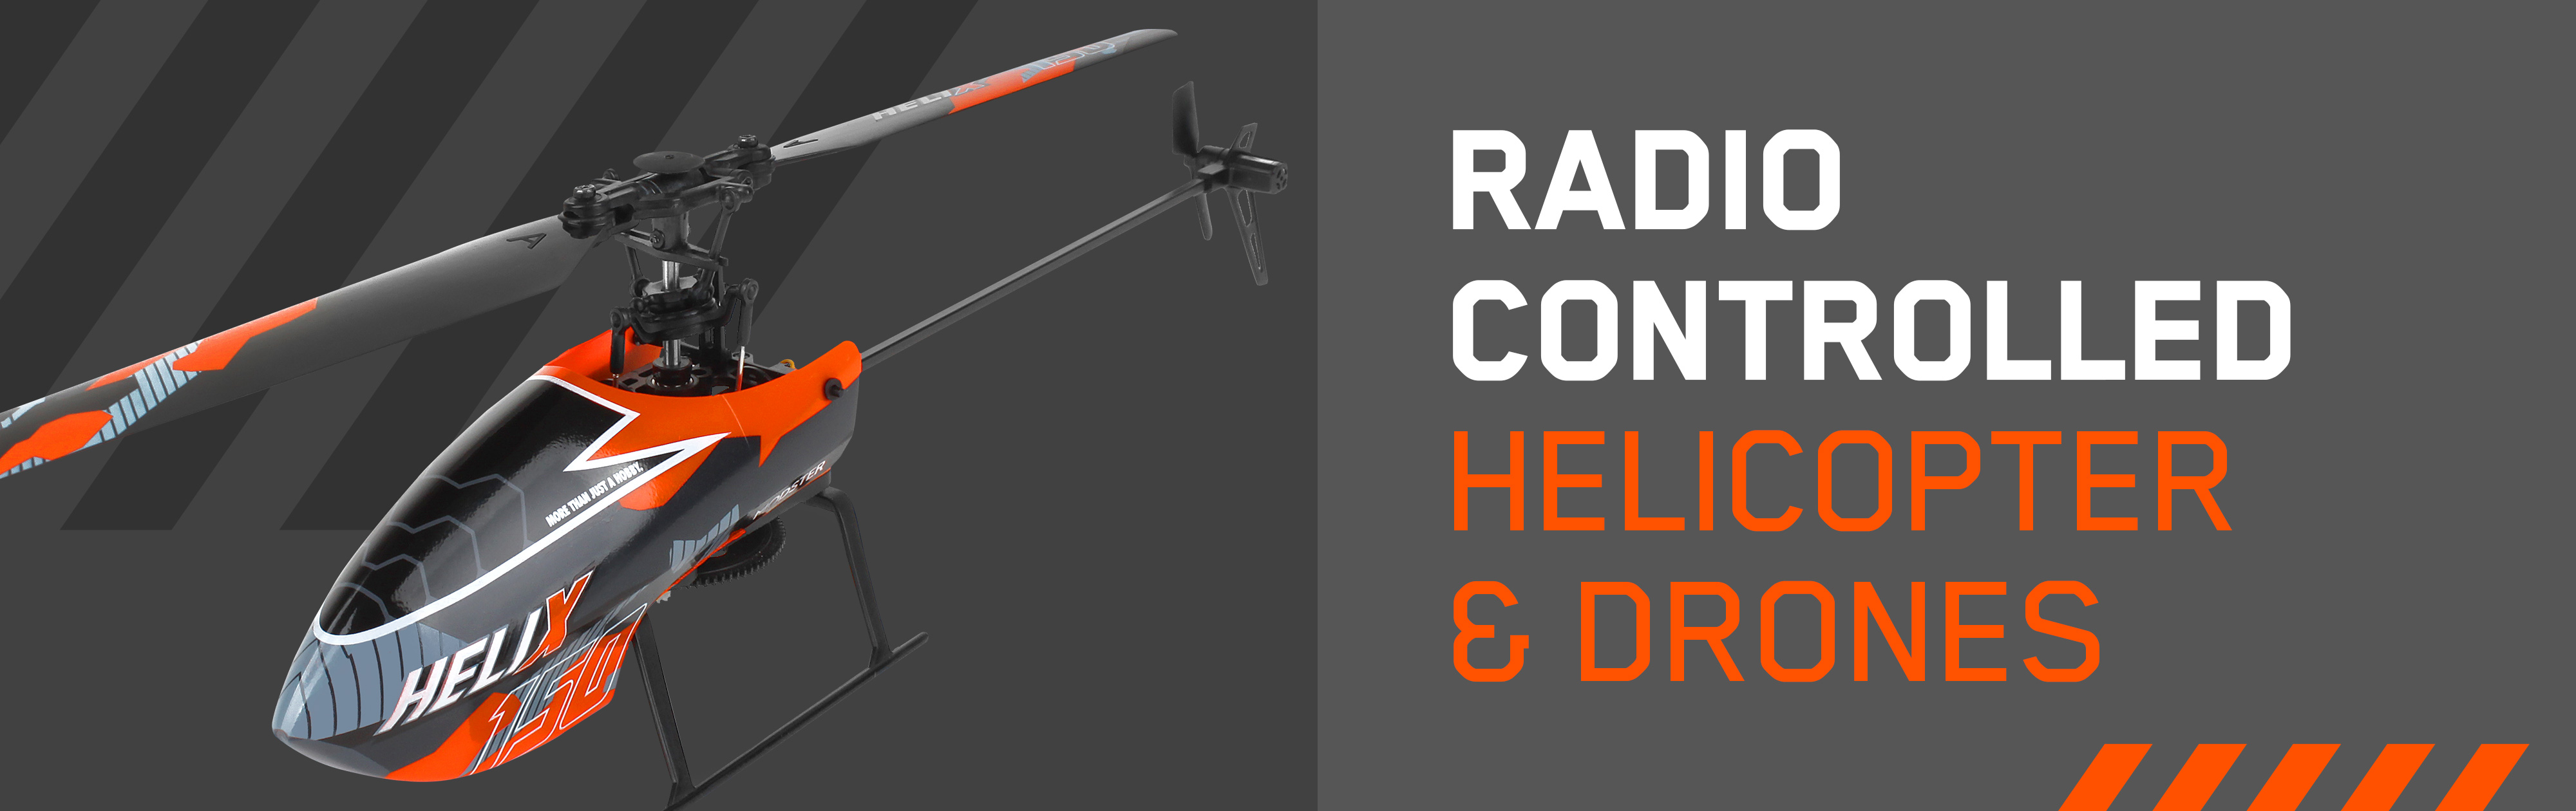 Modster-Drones-Helicopter-kaufen